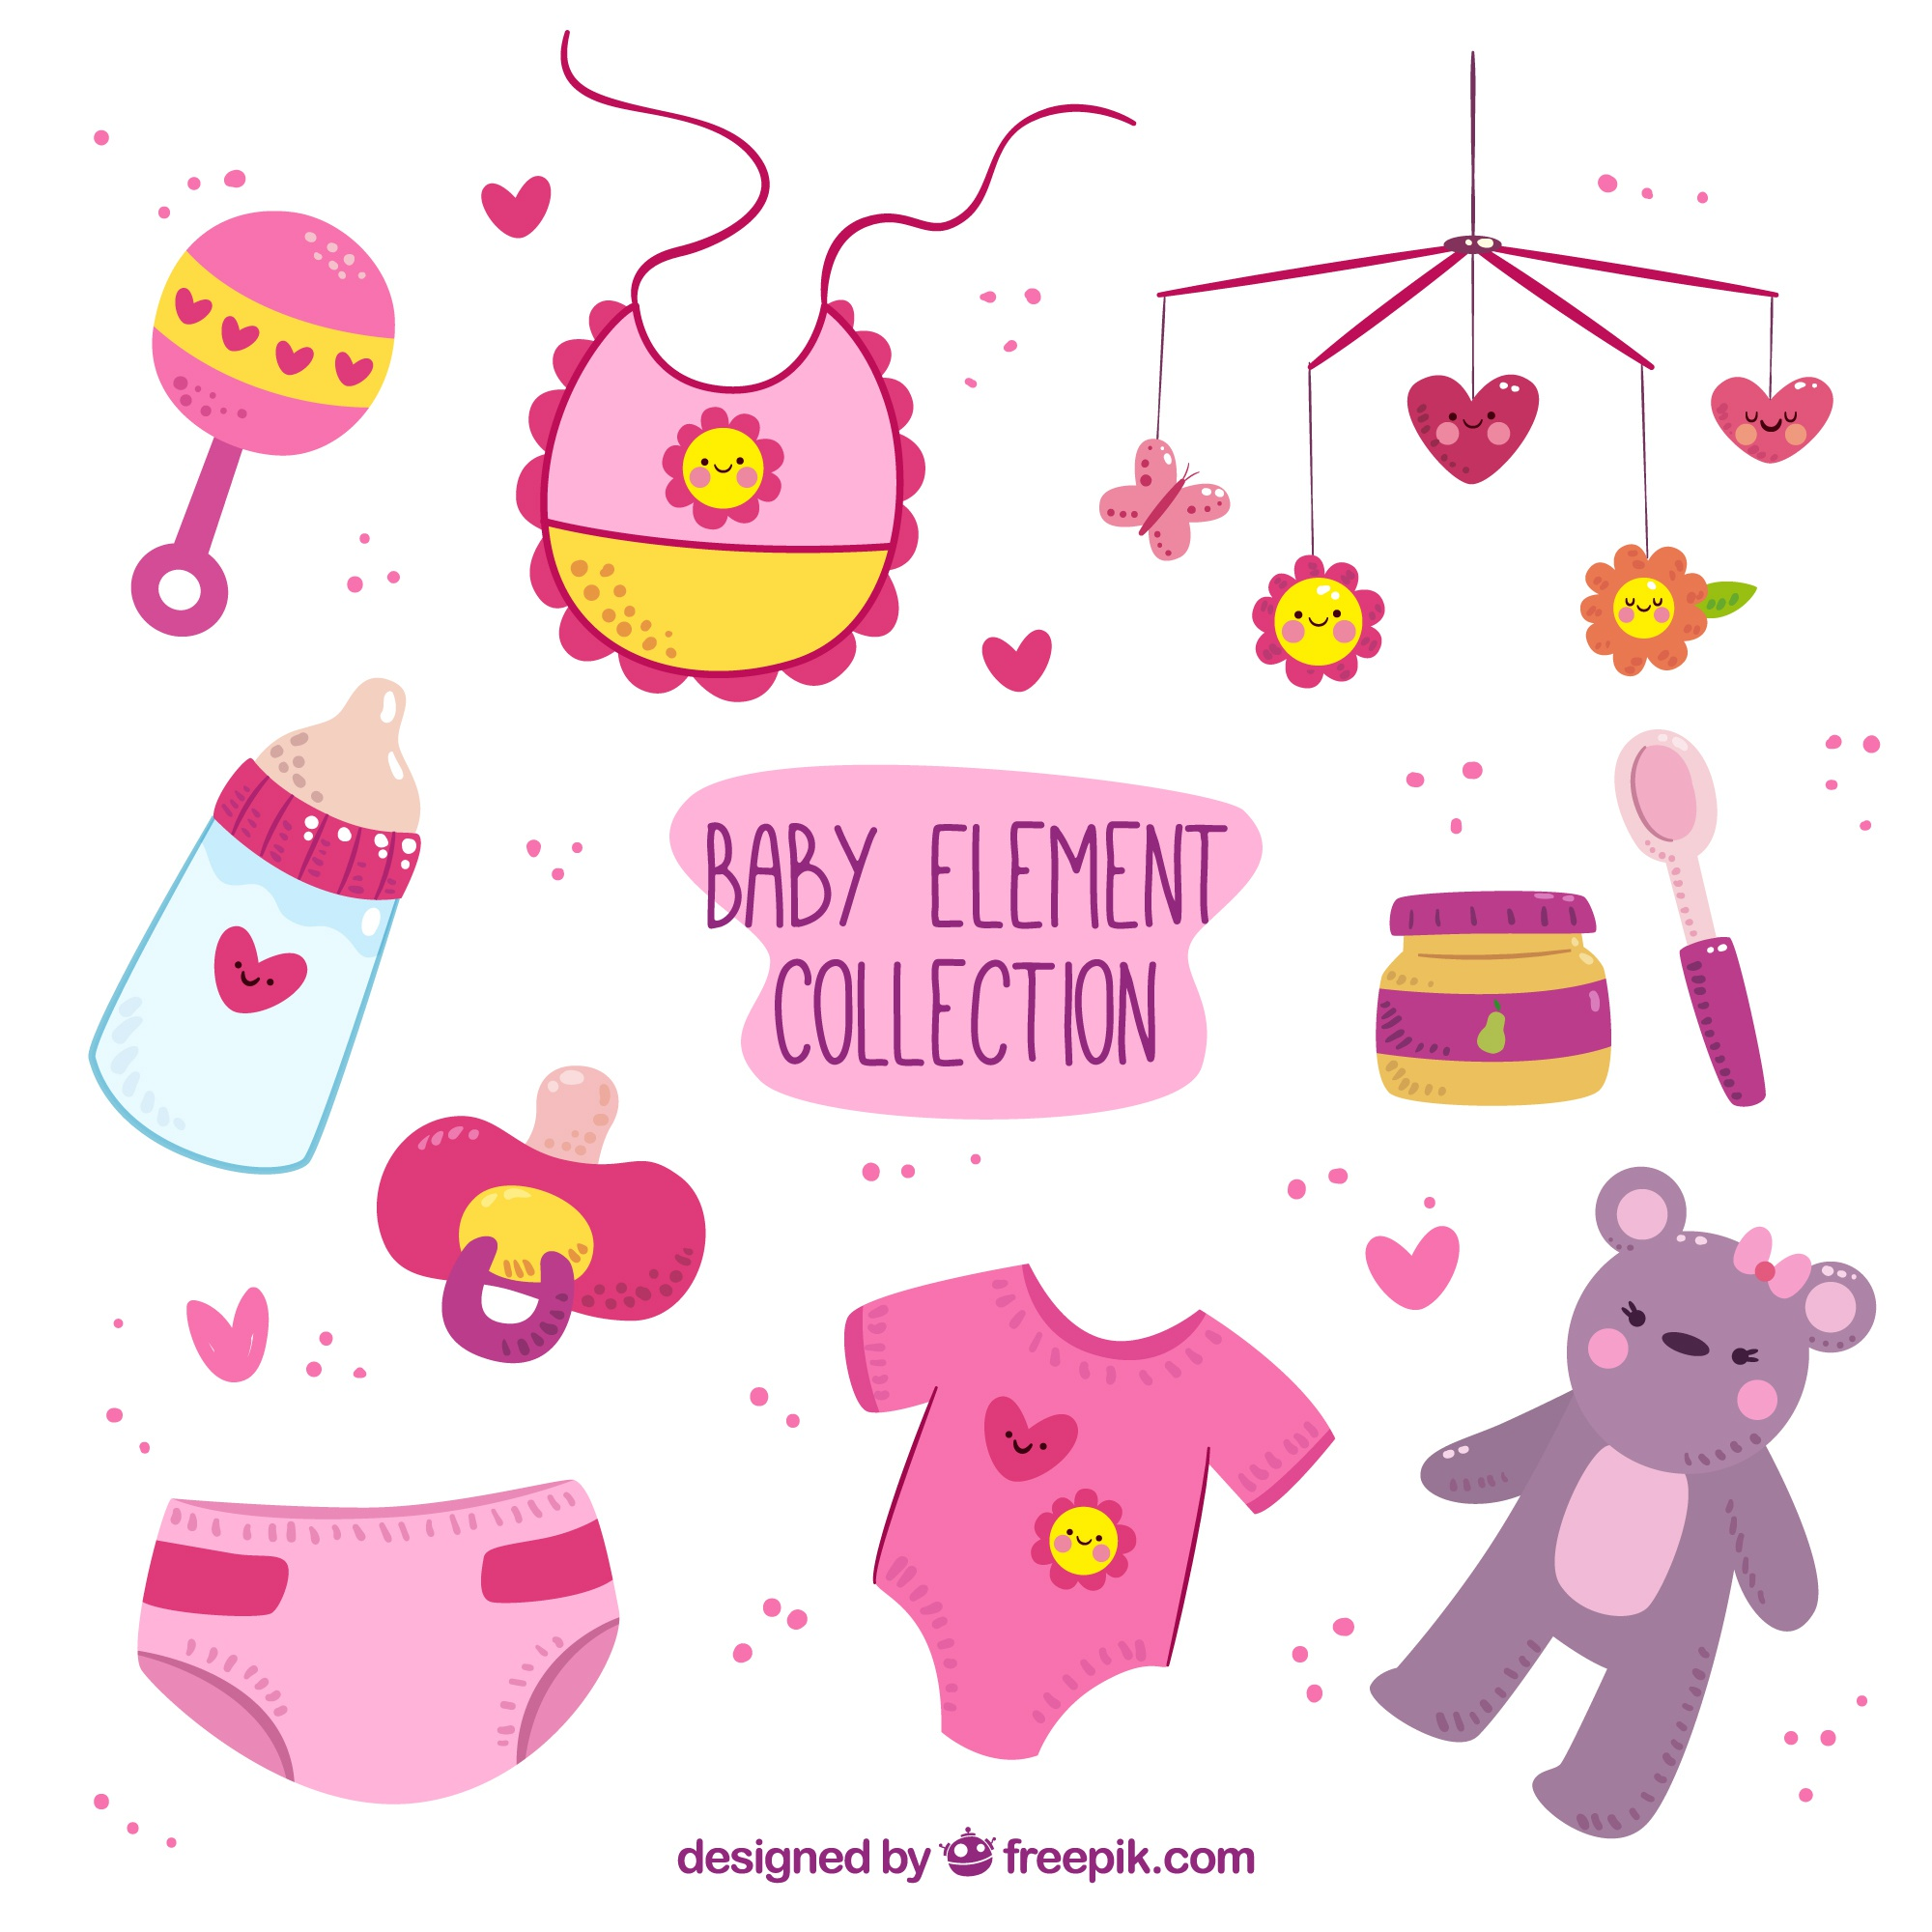 Hand-drawn collection of pink and purple baby items with yellow details